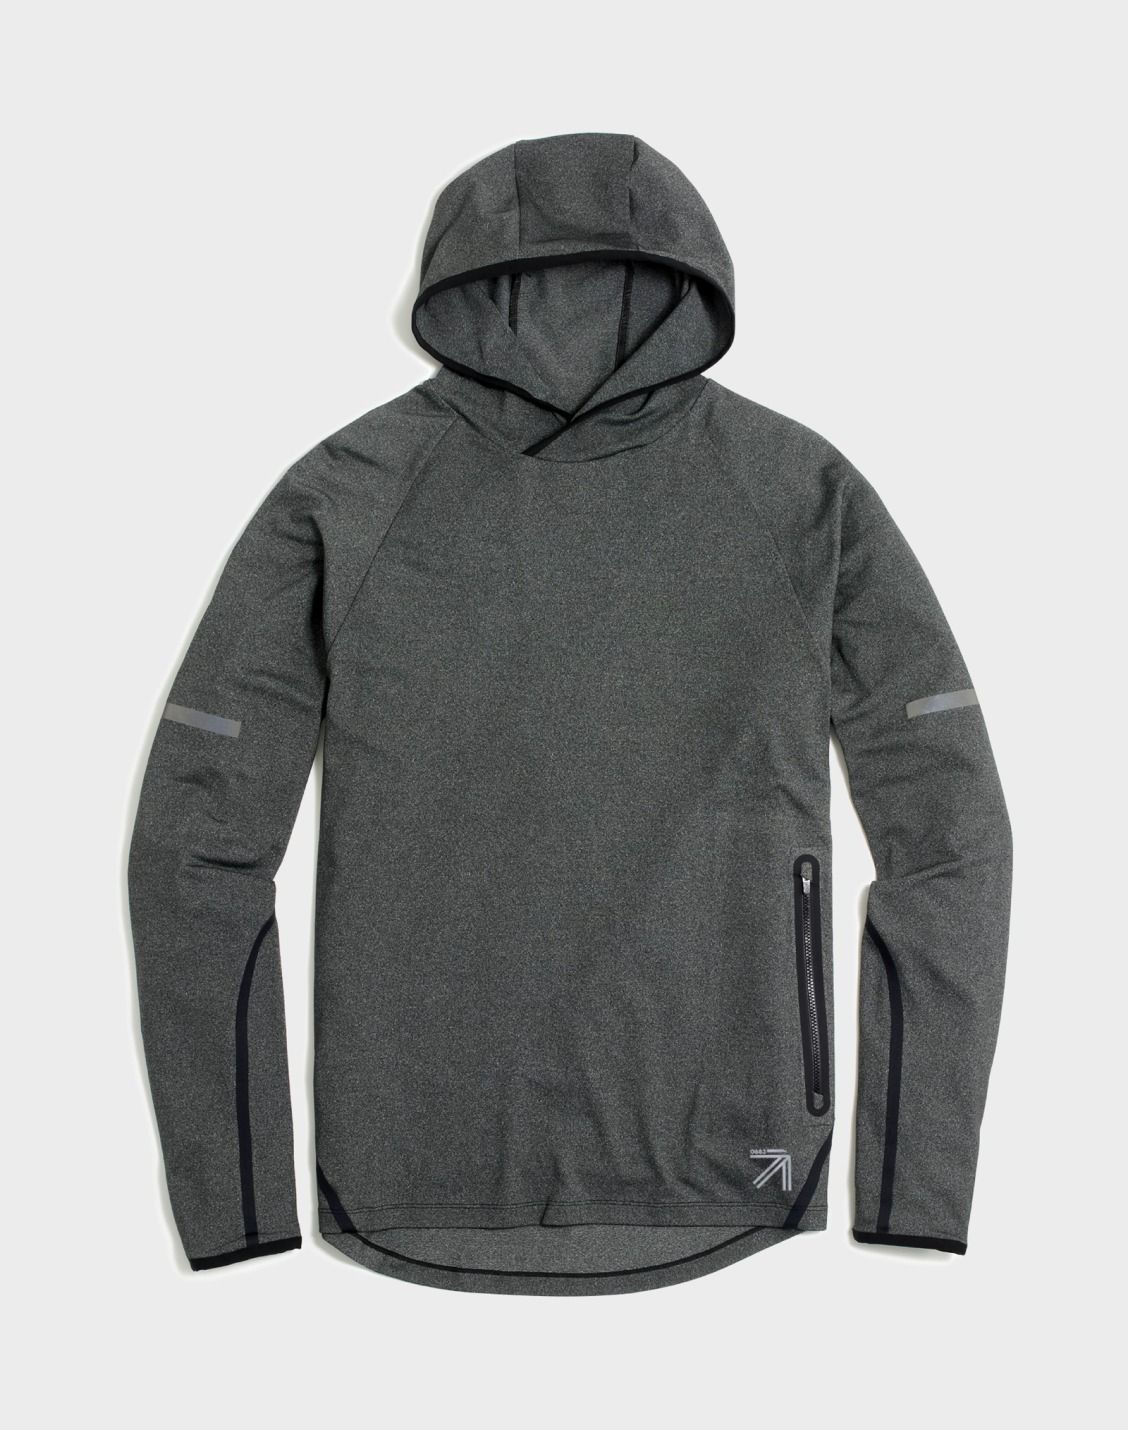 68aa43565b7 New Balance for J.Crew men s workout hoodie.